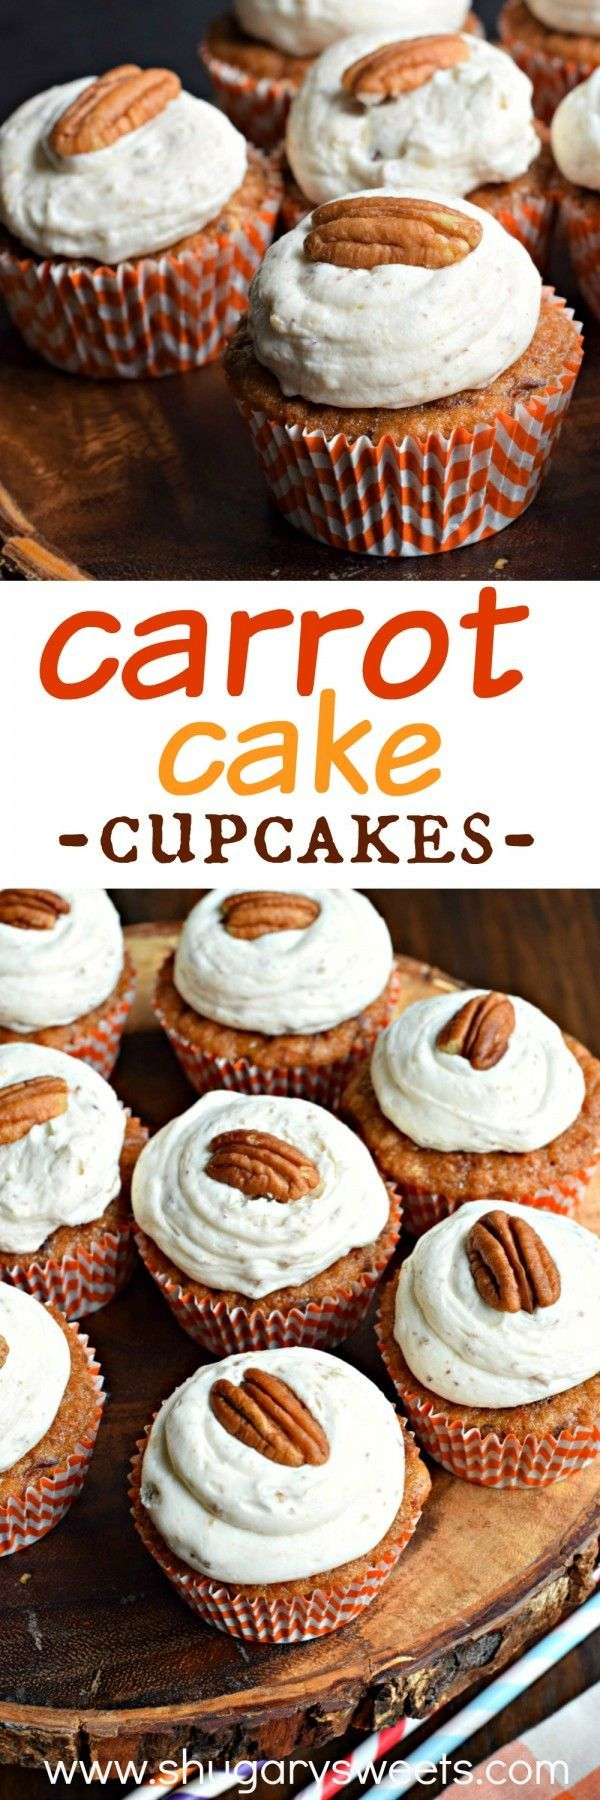 ... , from scratch, Carrot Cake Cupcakes with a cream cheese frosting